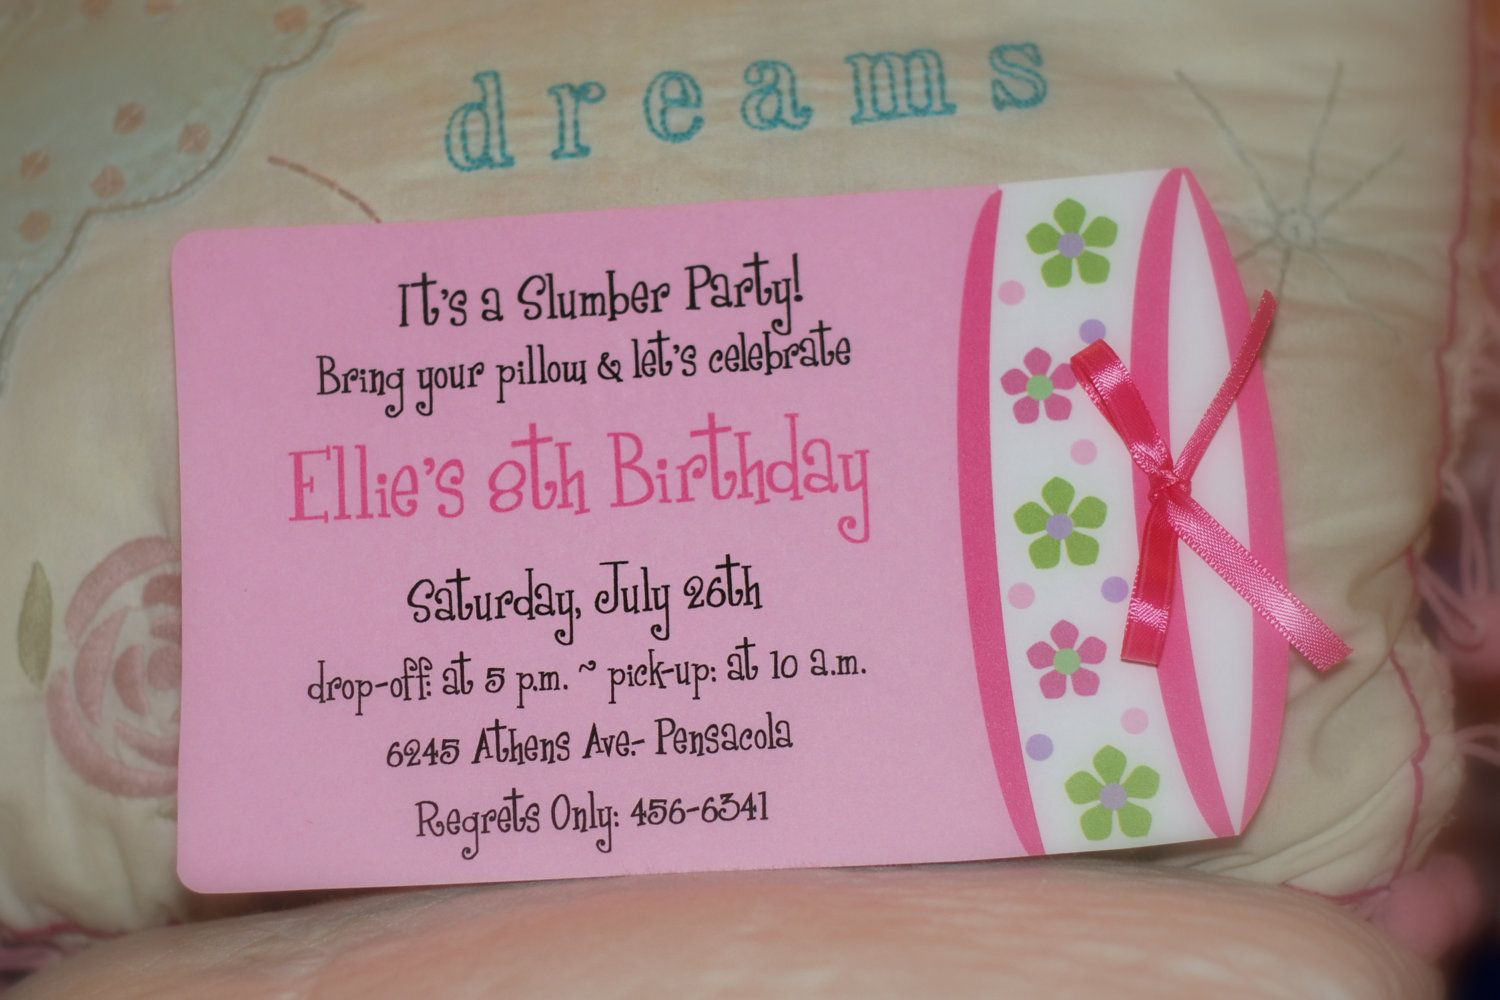 10 birthday party invitations slumber party birthday invitations 10 sleepover birthday party invitation or slumber party birthday invitations 2000 via etsy monicamarmolfo Image collections